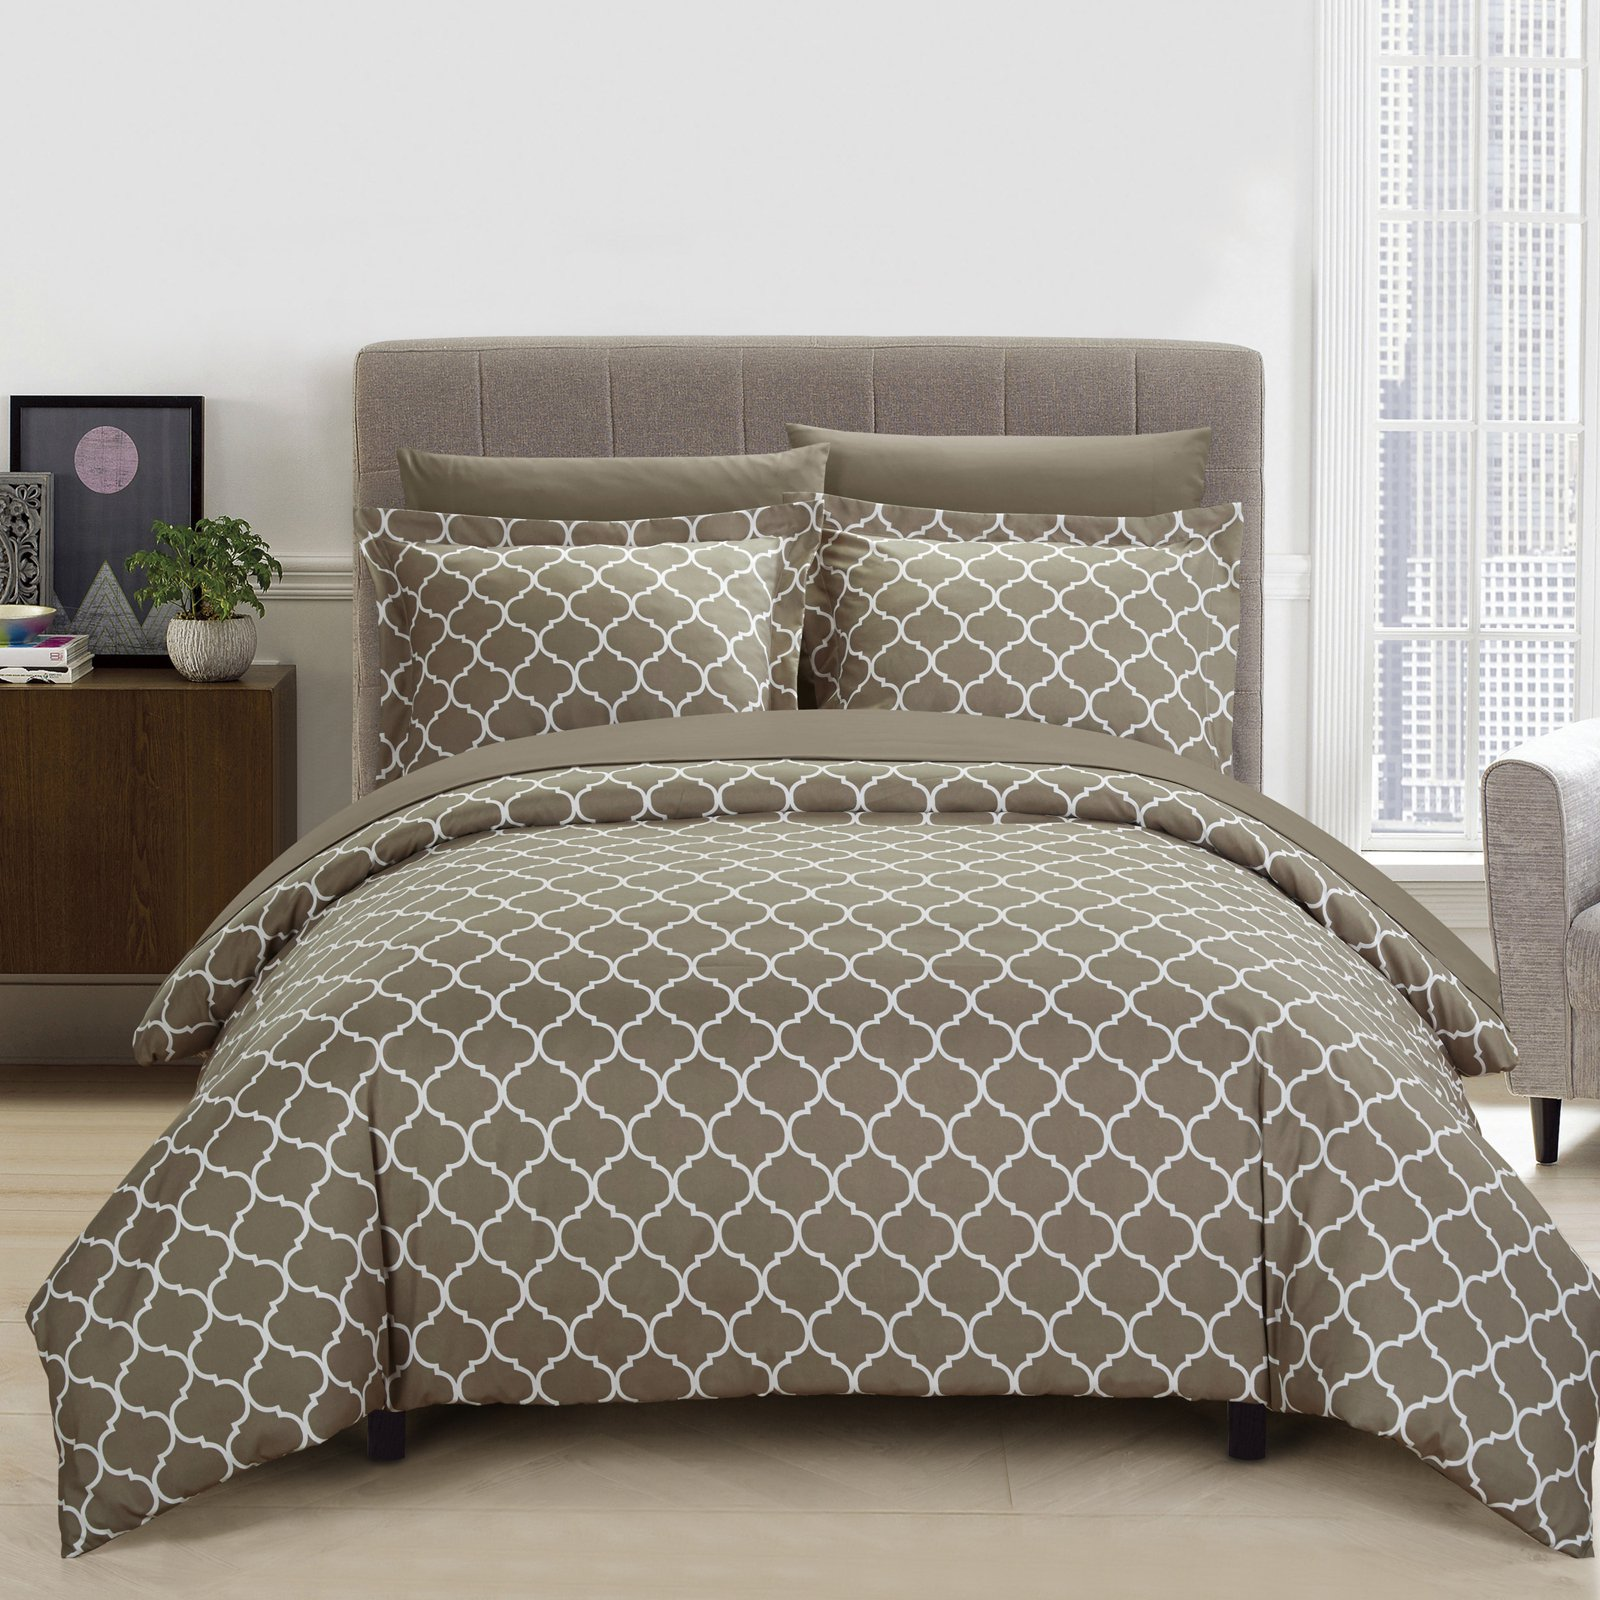 Finlay Duvet Cover Set by Chic Home